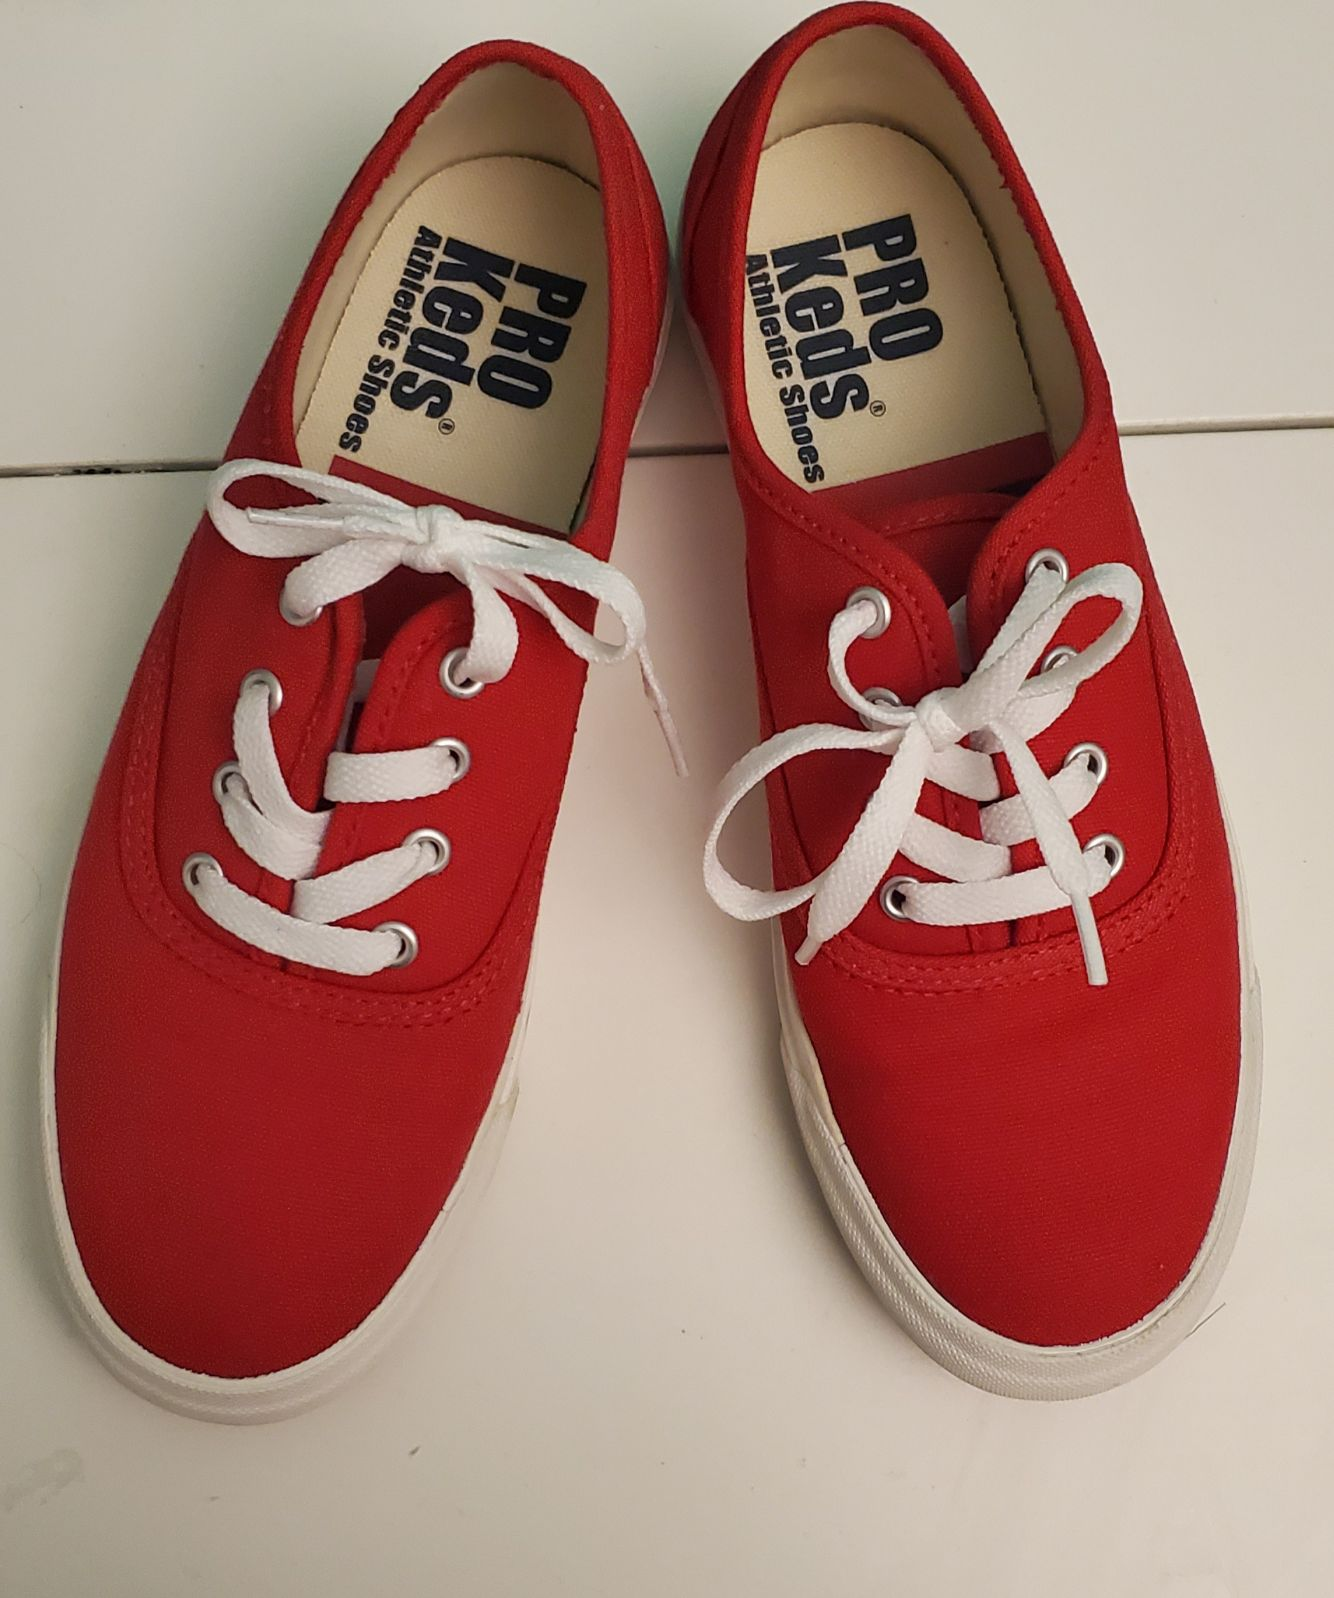 Pro Keds Canvas Shoes in Red